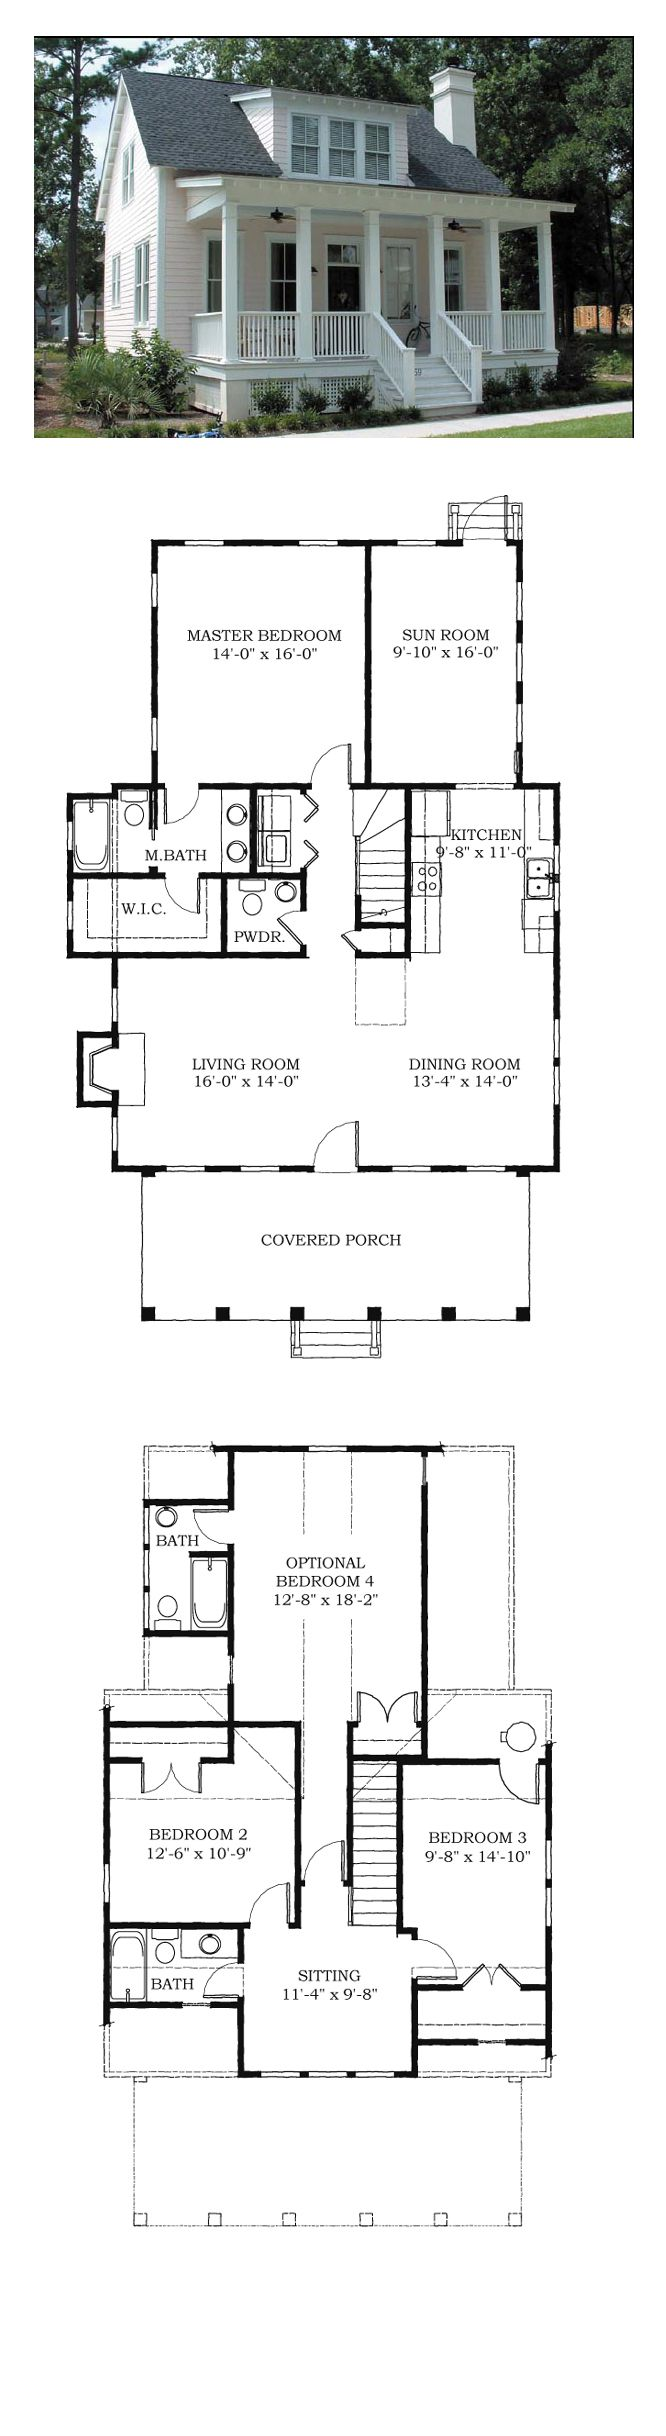 tiny little house plan.